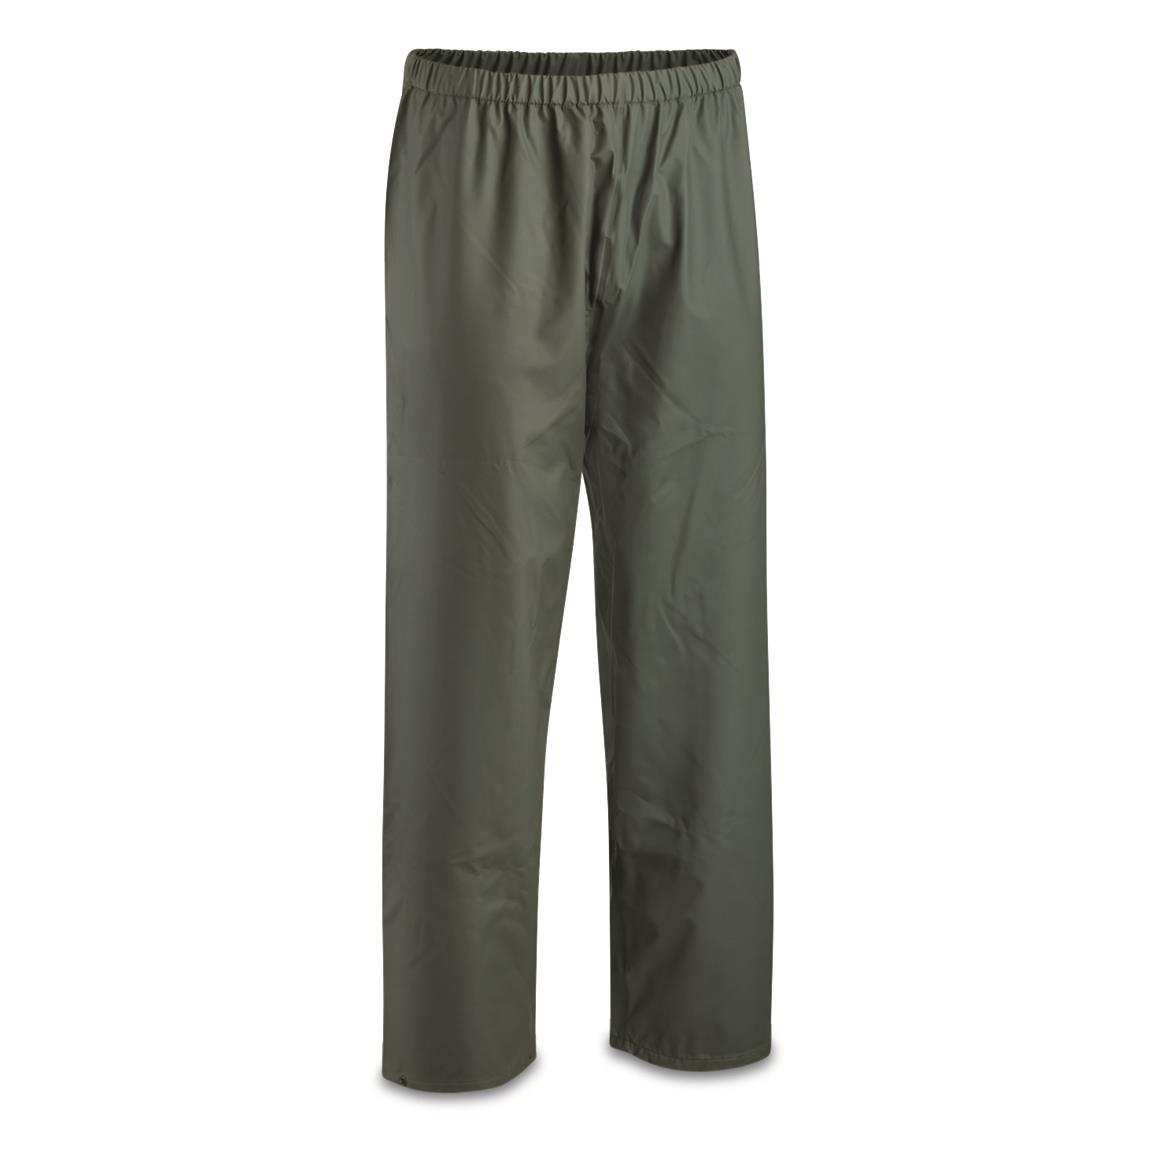 Belgian Military Surplus Waterproof Pants, New